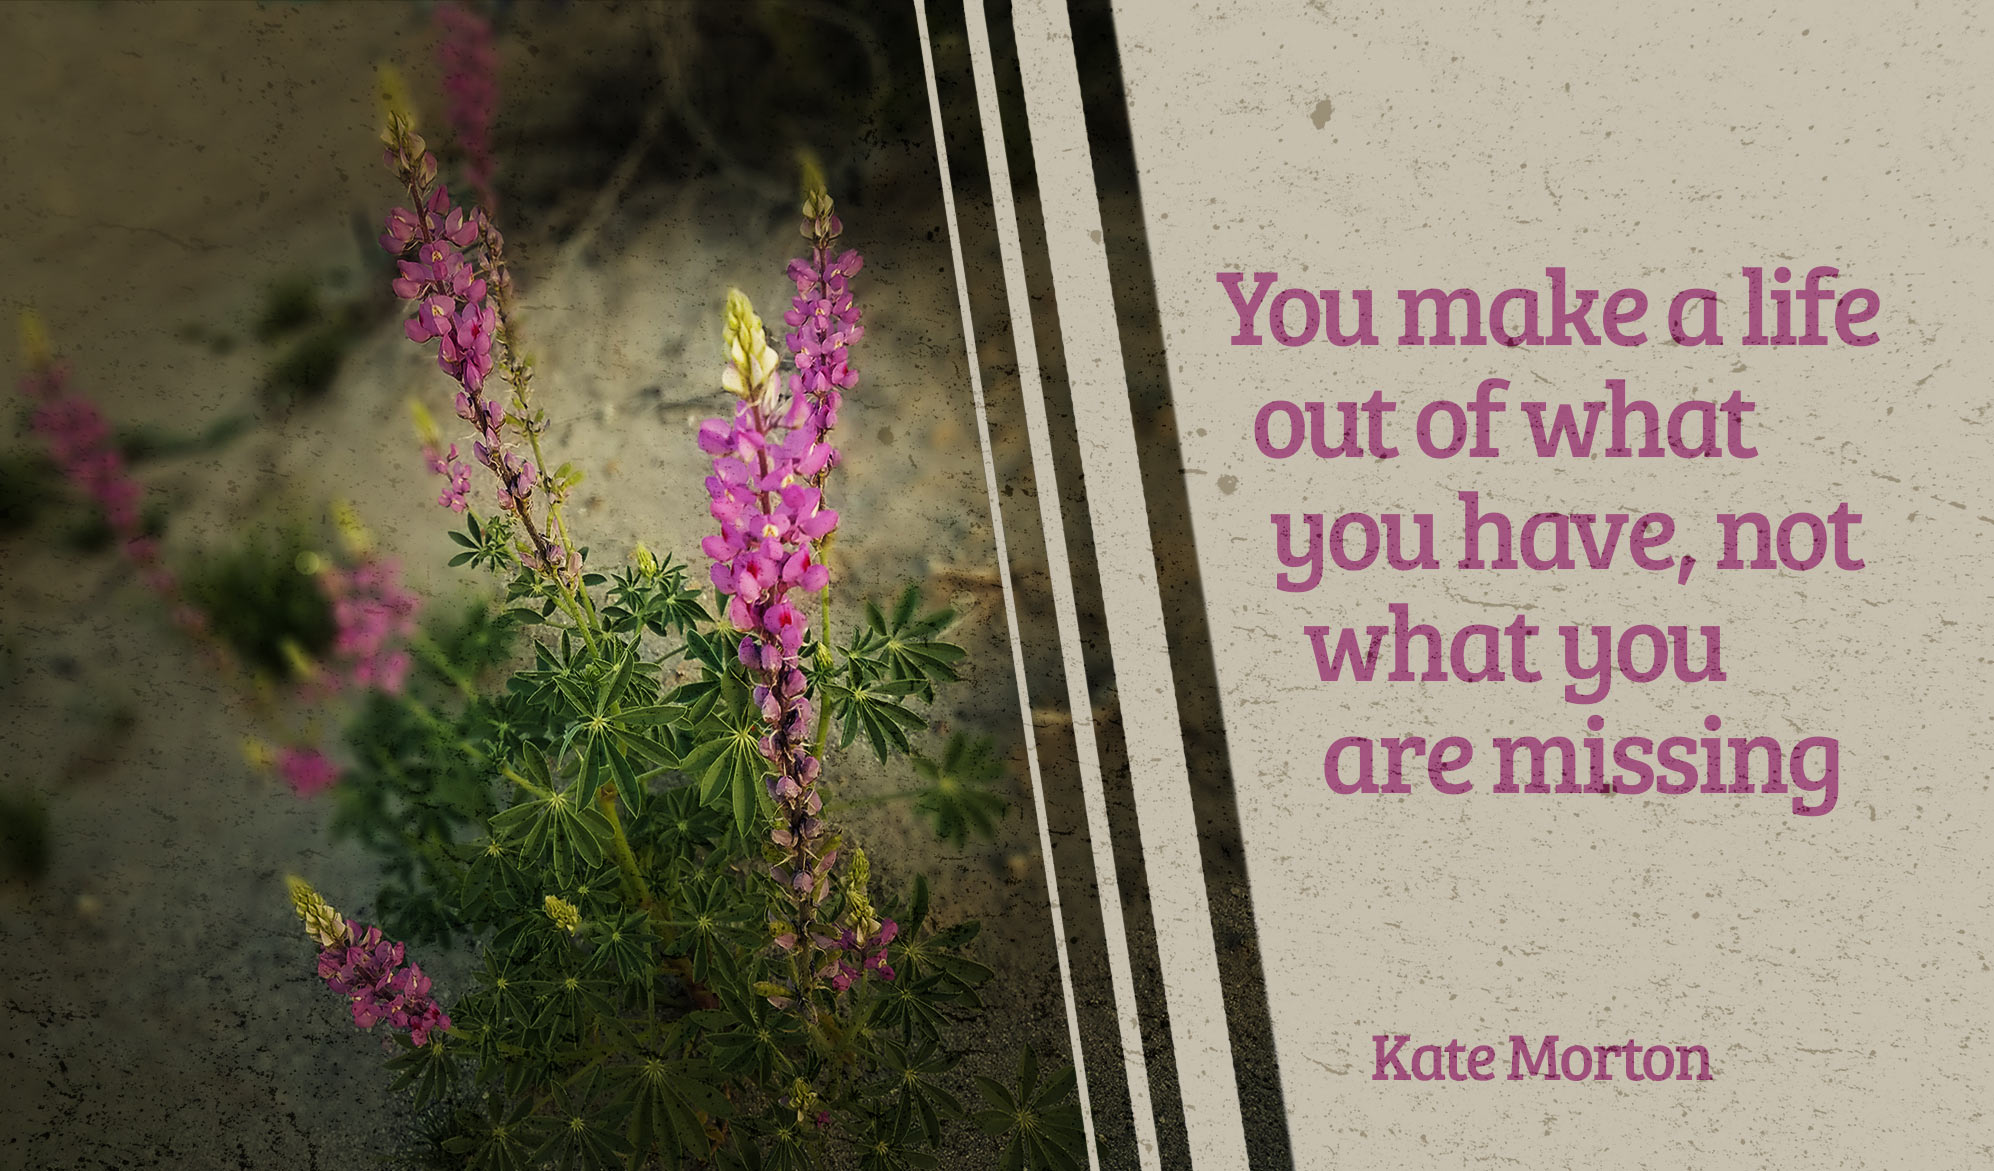 daily inspirational quote image: a purple wildflower growing out of desert sand